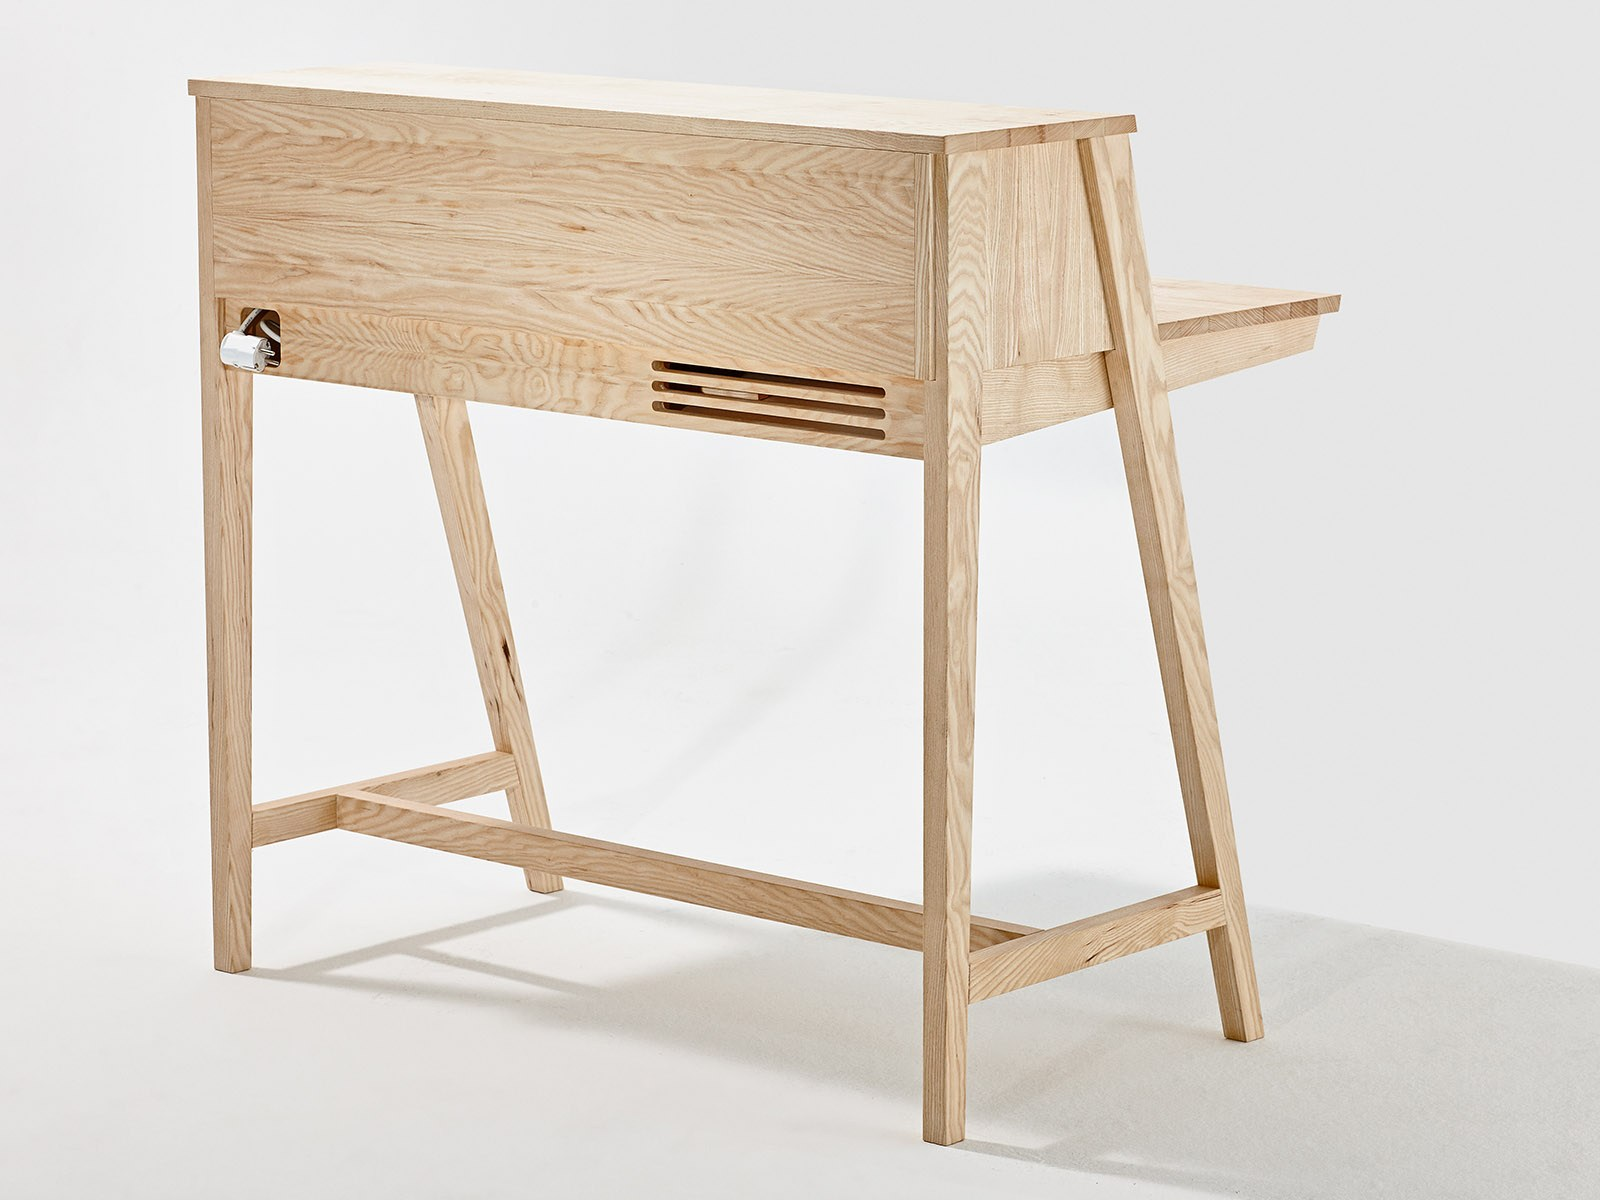 Sixay Furniture BELLE